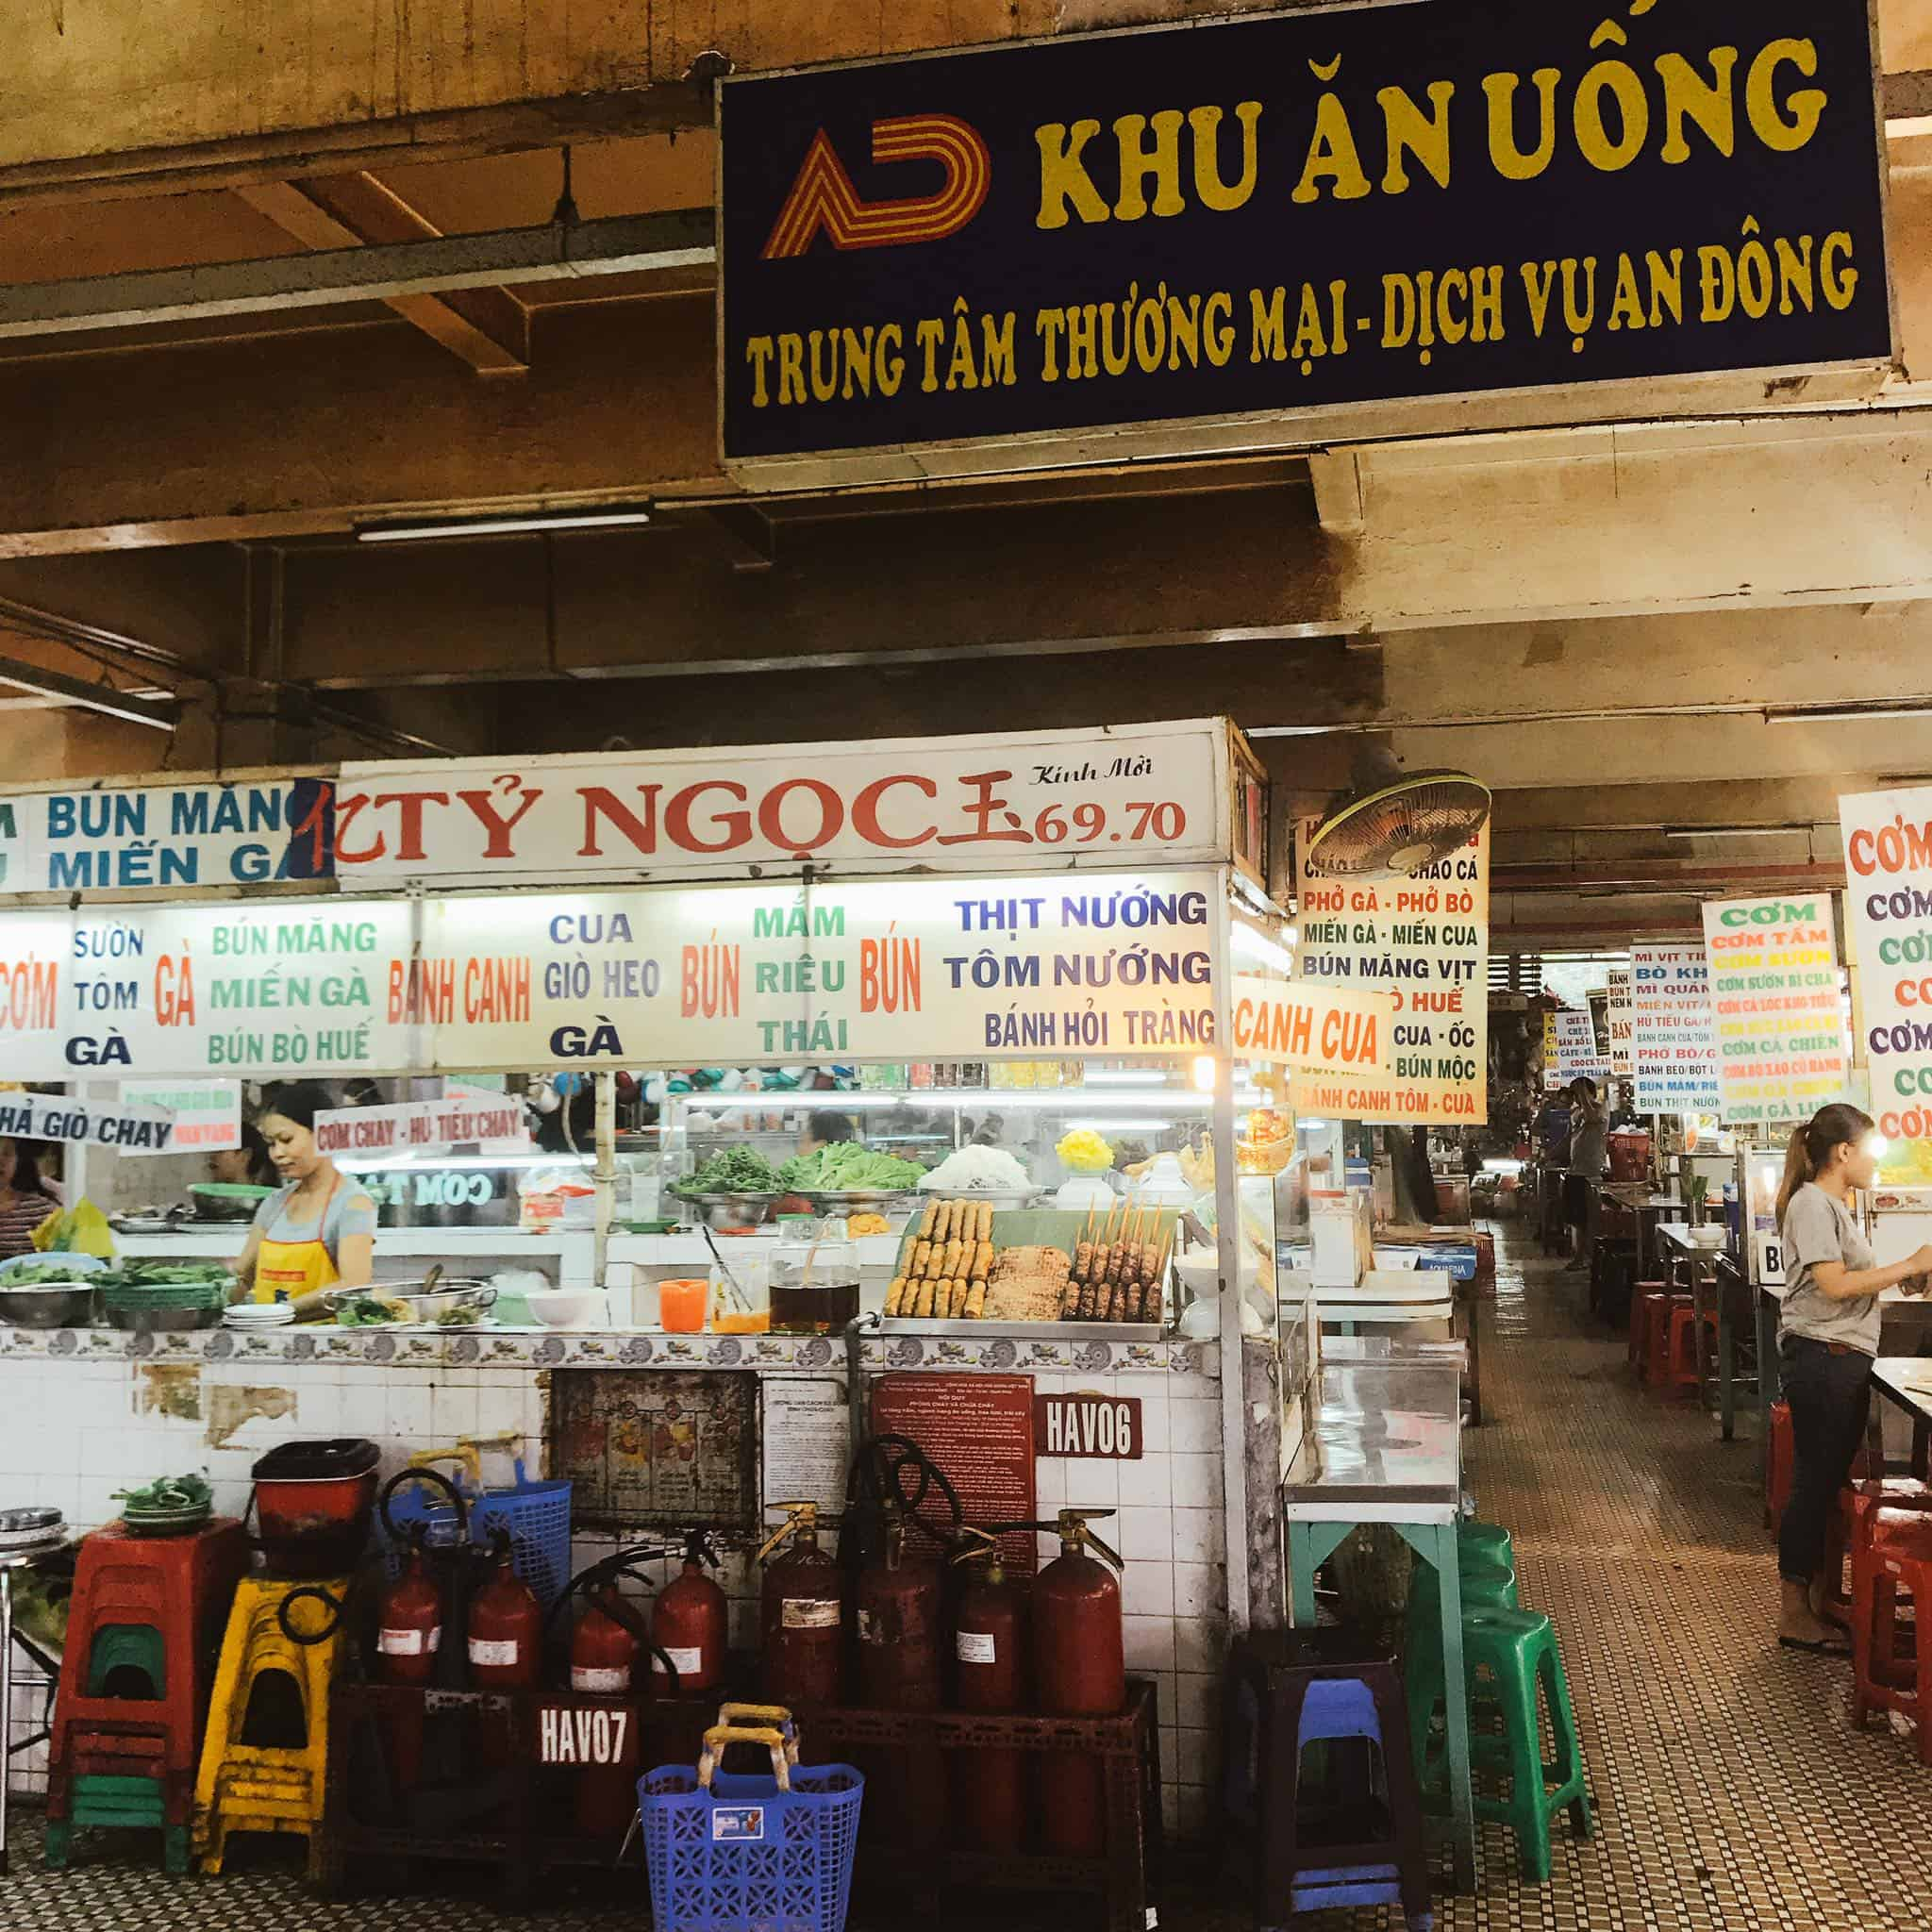 Architecture and layouts in An Dong Market